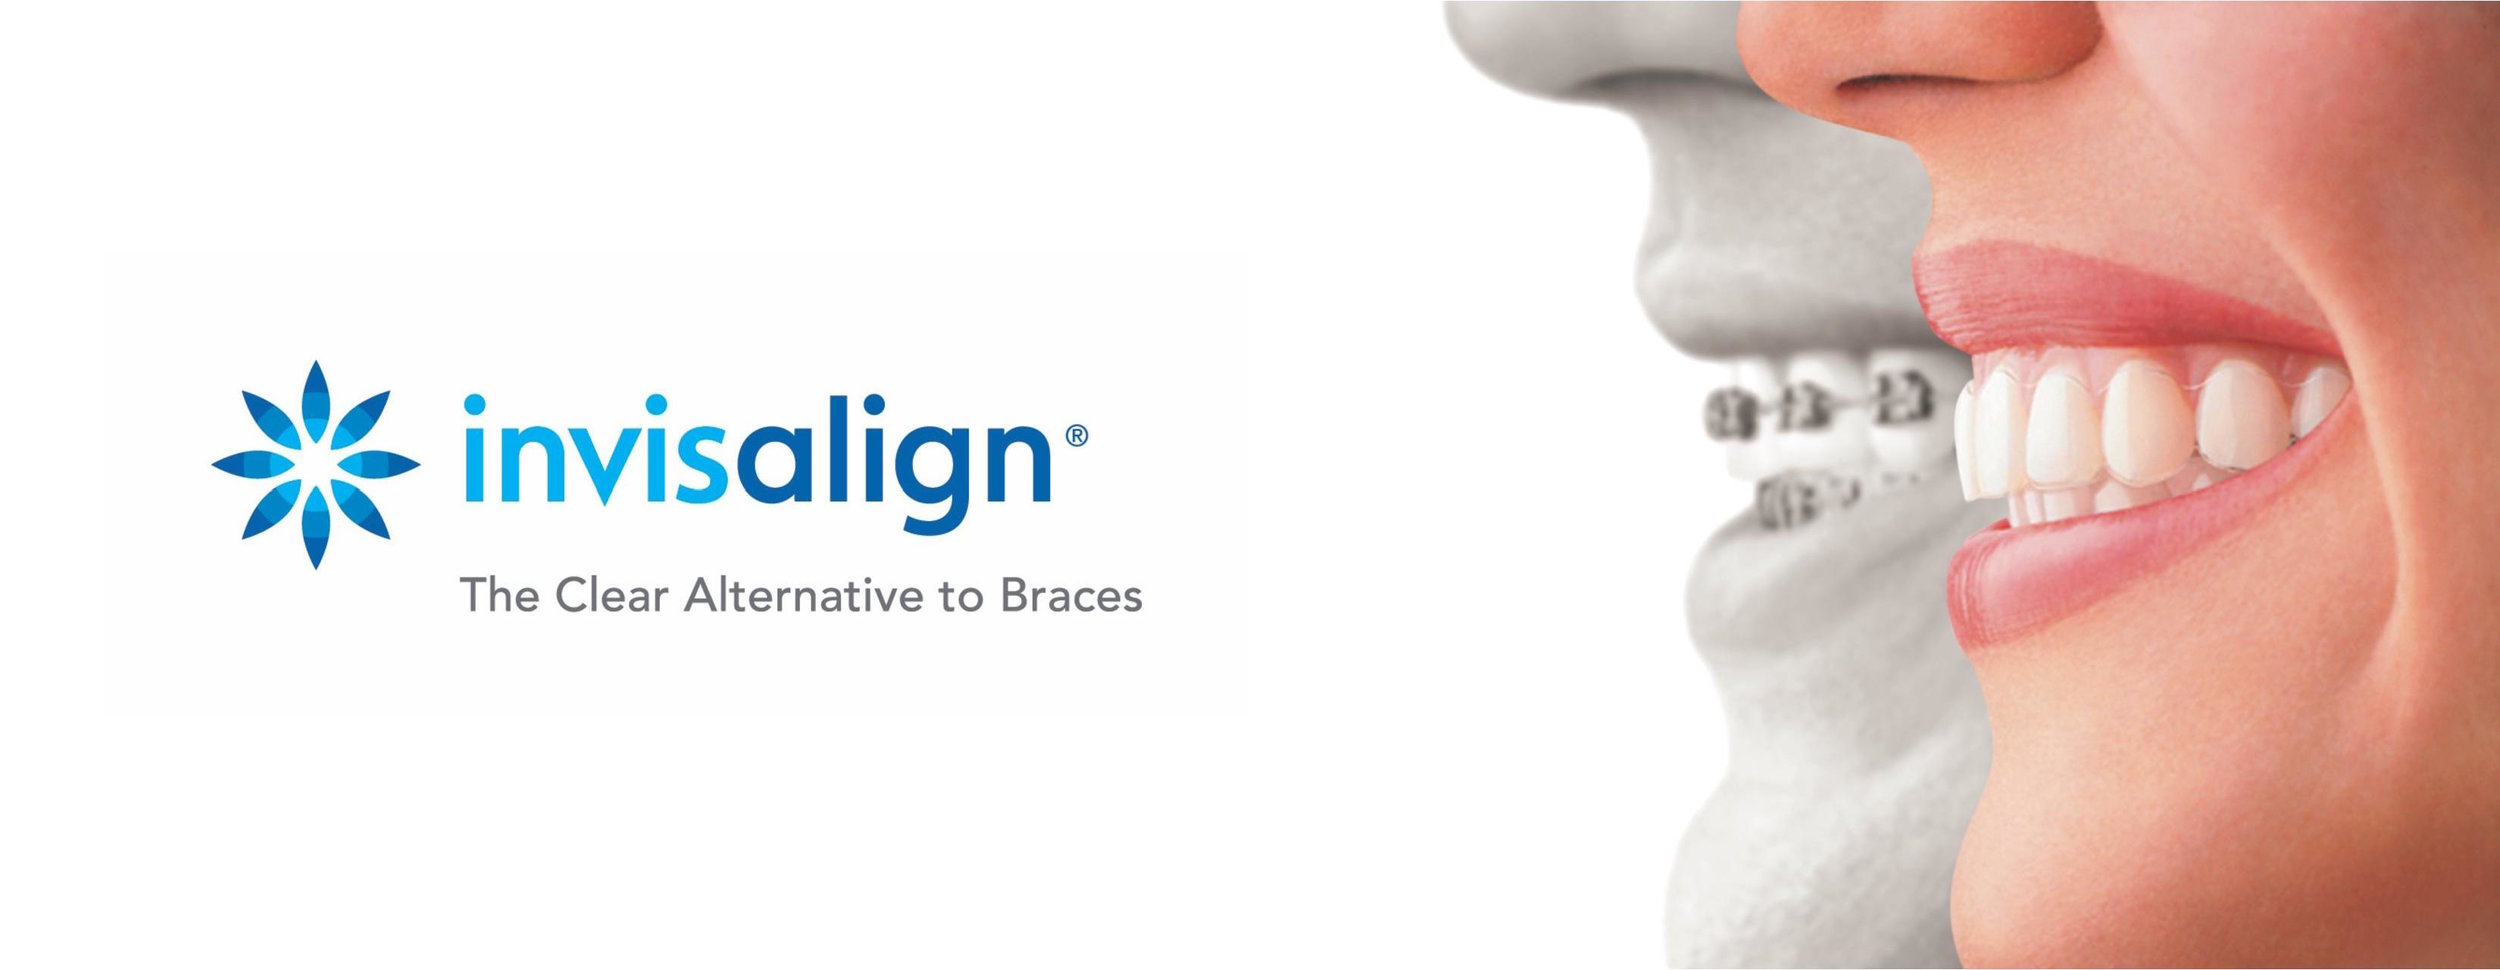 Invisalign-1-page-001.jpg